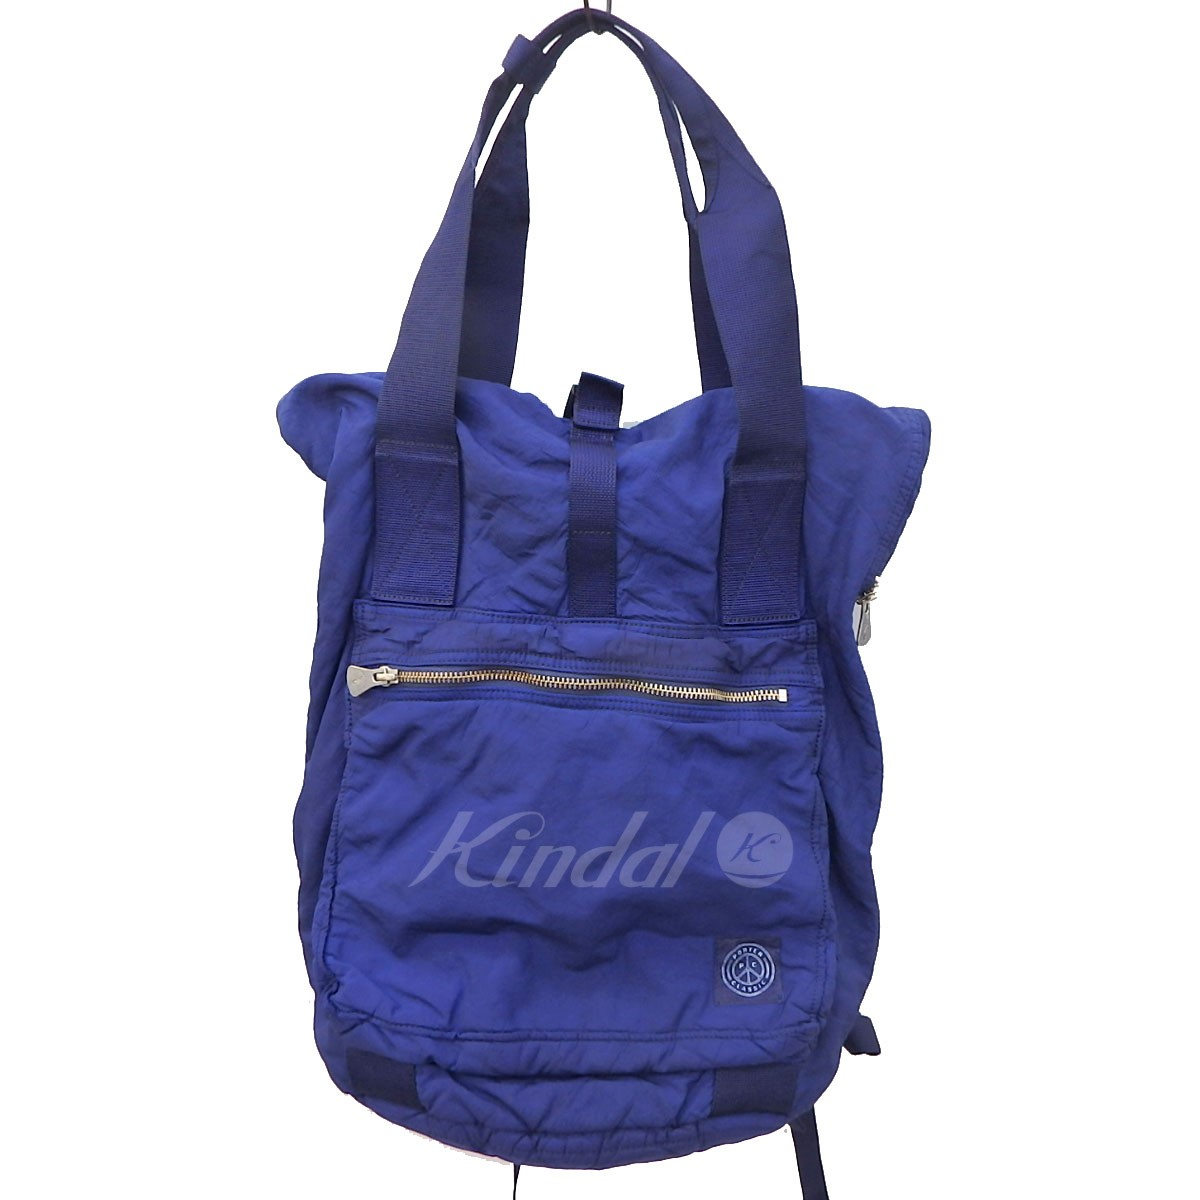 【中古】Porter Classic ×REBIRTH PROJECT AIR BACK インディゴ染め2WAYバック 【送料無料】 【088077】 【KIND1550】